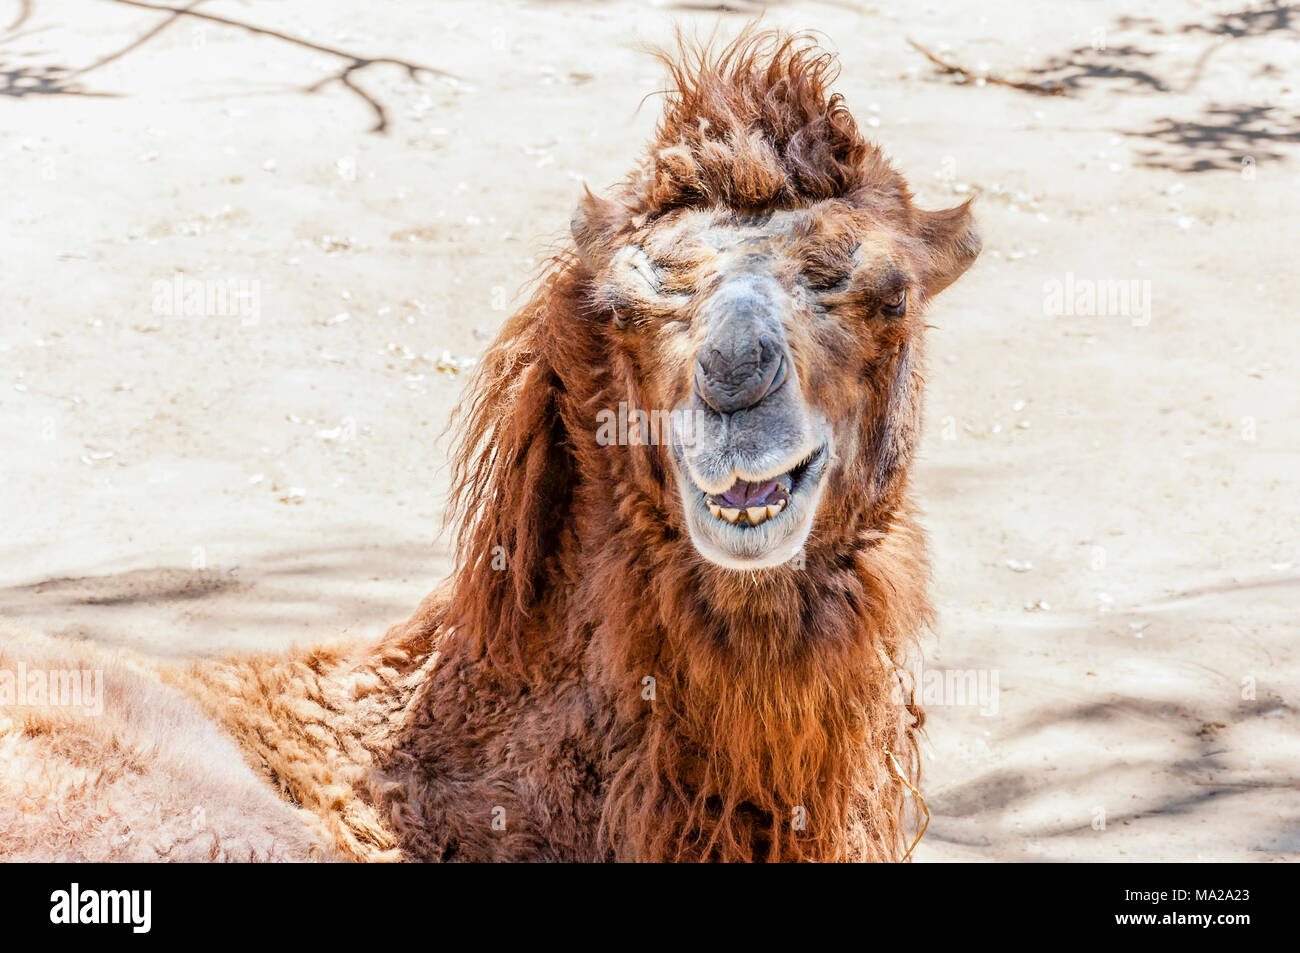 The Bactrian camel (Camelus bactrianus) is a large, even-toed ungulate native to the steppes of Central Asia. - Stock Image